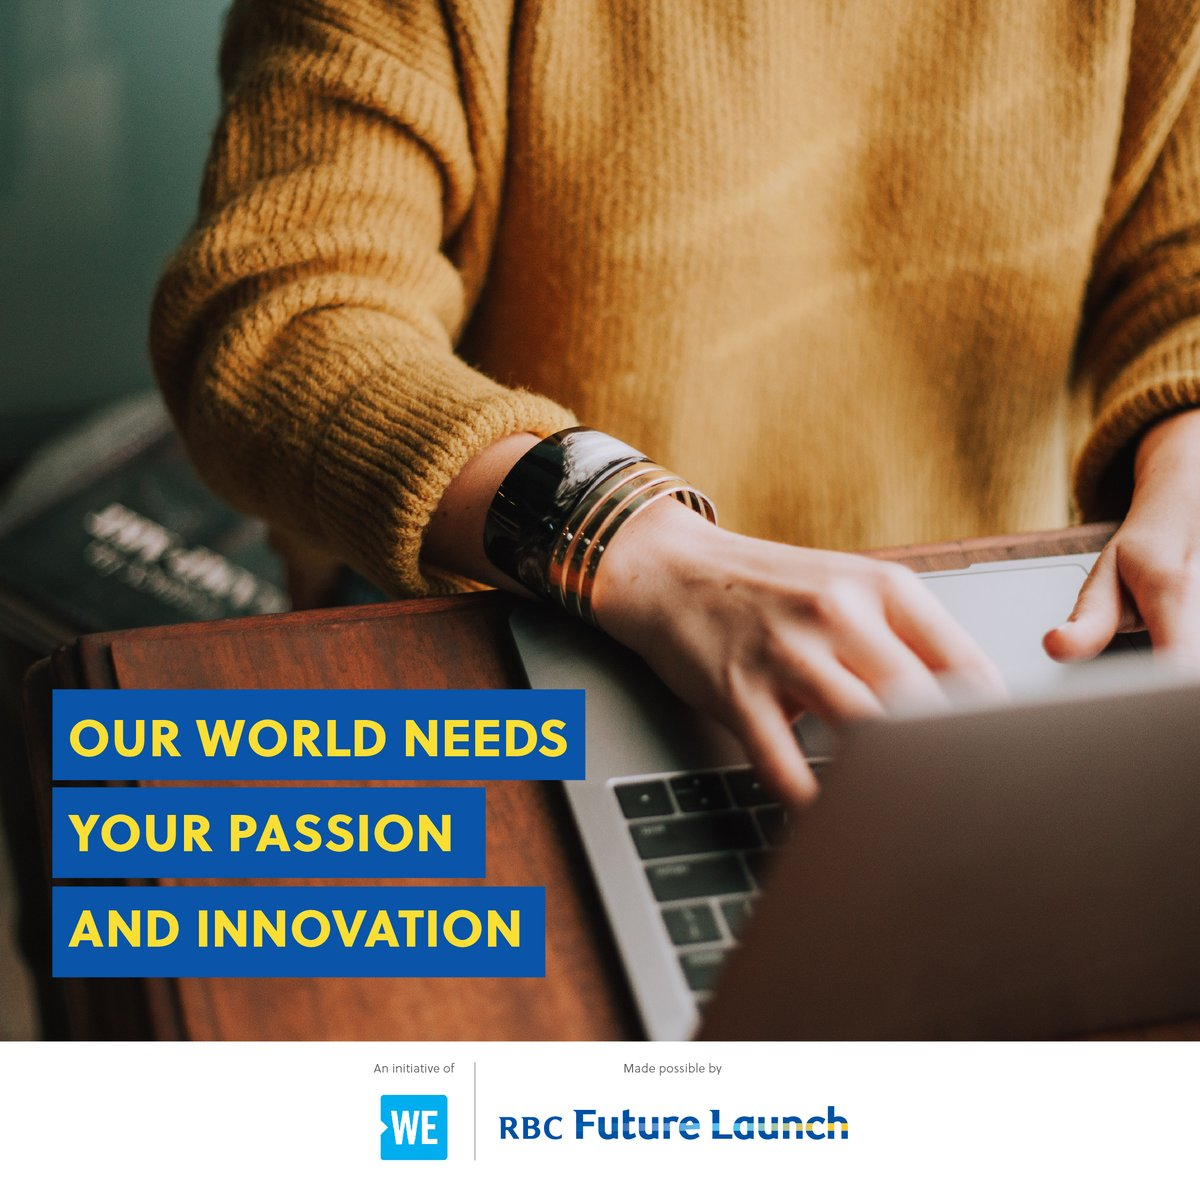 Bring your social good ideas to life and develop your skills with WE Are Social Entrepreneurs, powered by @RBC Future Launch. Don't miss this free, inspiring workshop! Register now: https://t.co/hqO5AyU2jX https://t.co/A8zTMwk3h8